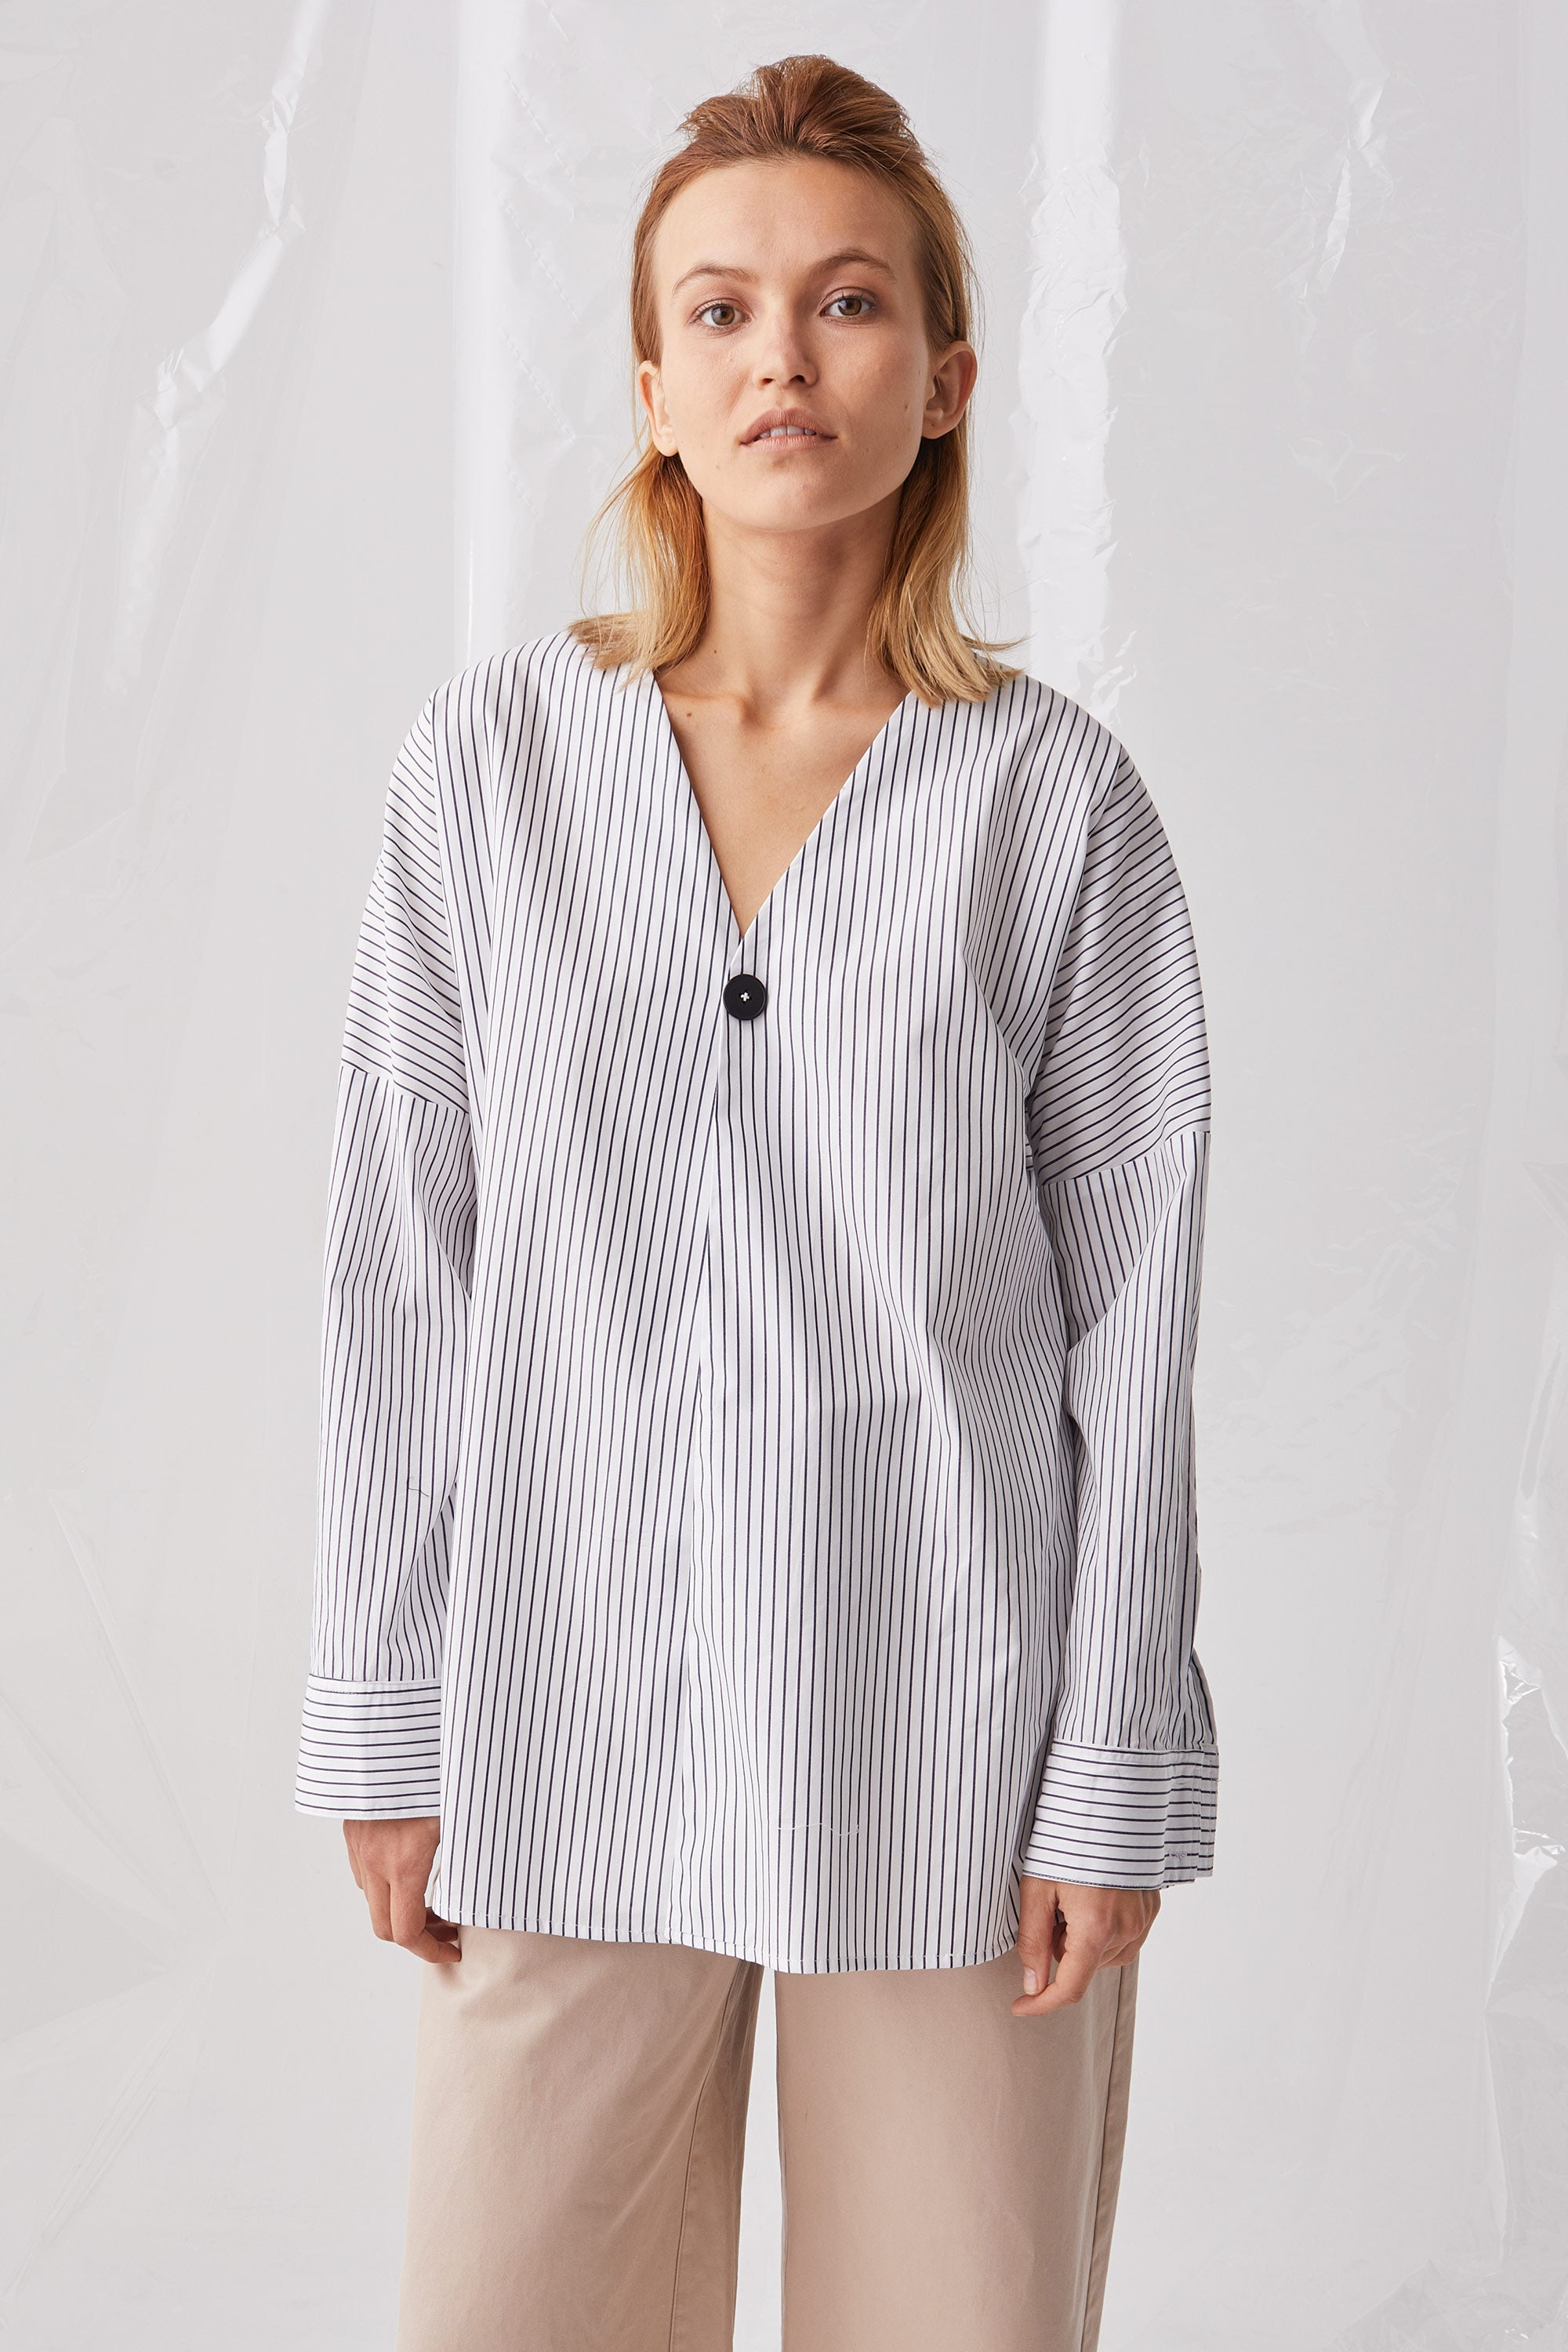 Ricochet NZ Fashion Designer Clothing Boutique SS18 Ako Shirt Black White Stripe Made in NZ